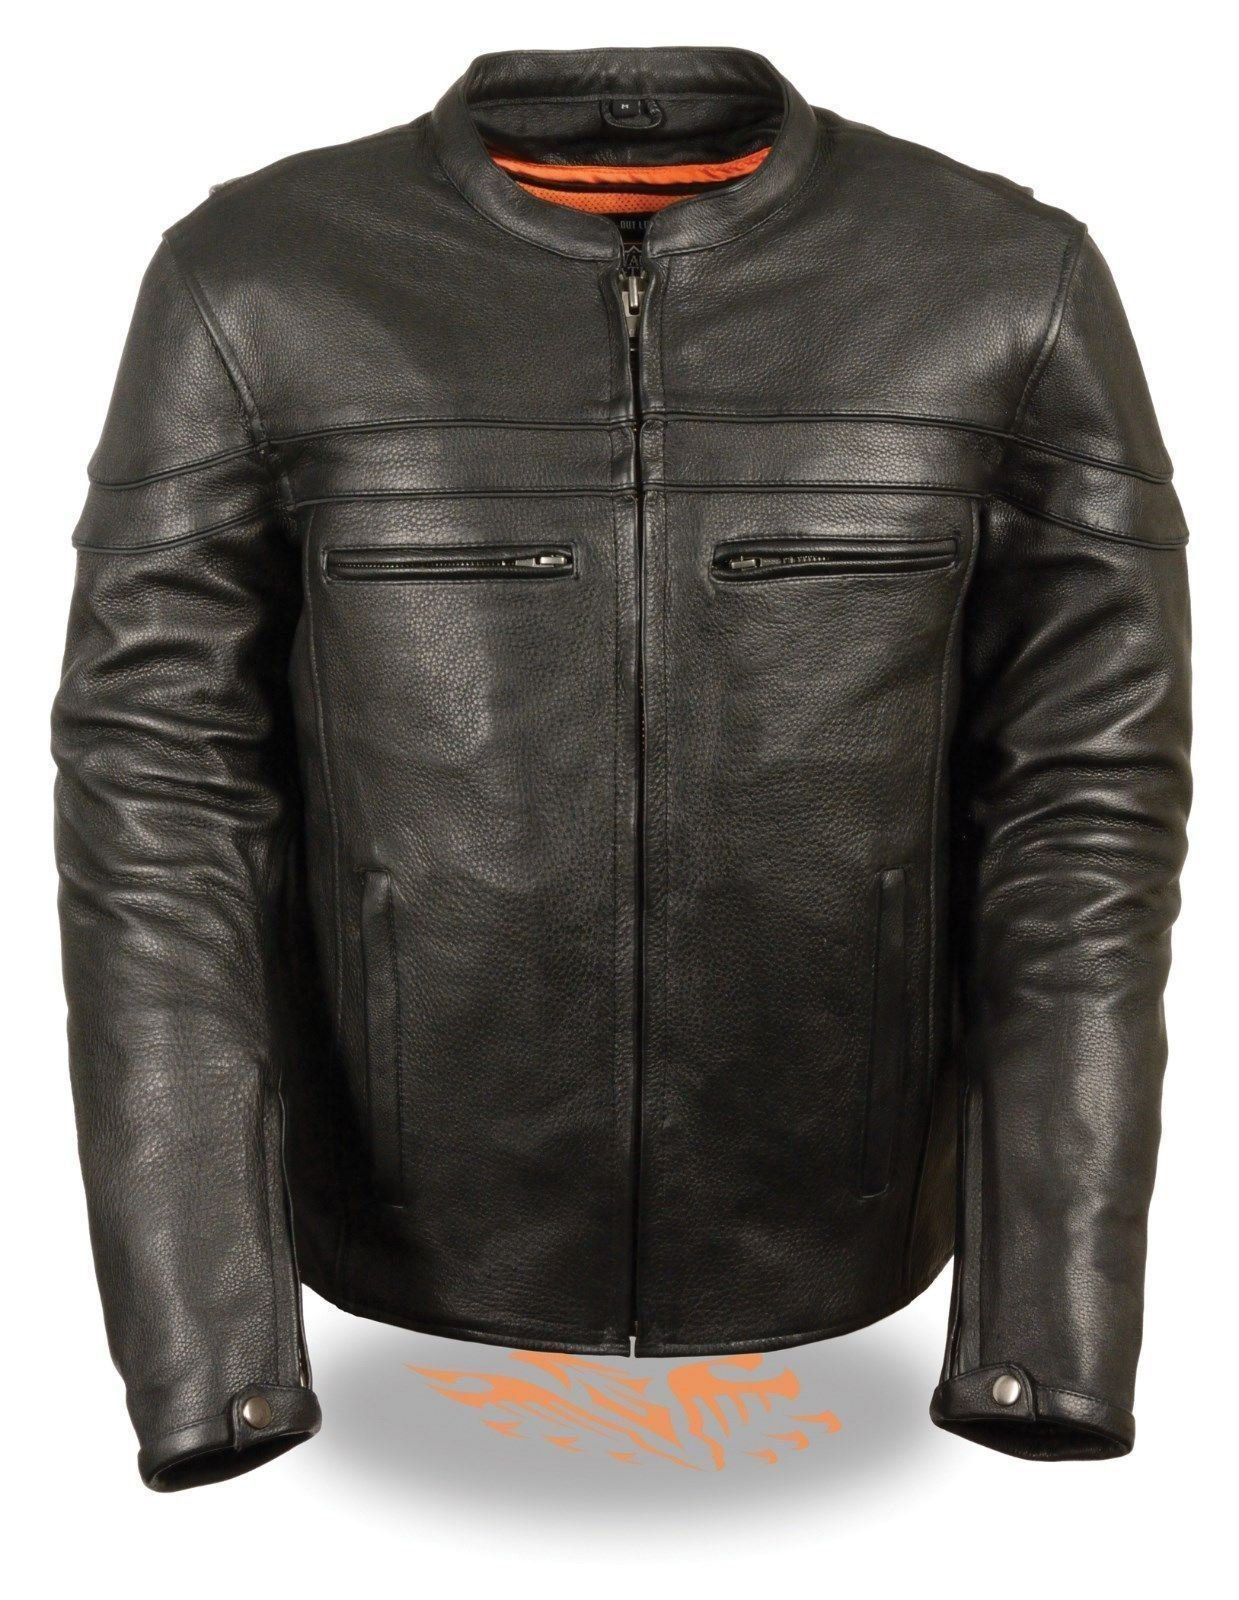 MEN'S MOTORCYCLE REFLECTIVE SCOOTER NAKED SOFT COW LEATHER JACKET W/GUN POCKET (6XL Regular)